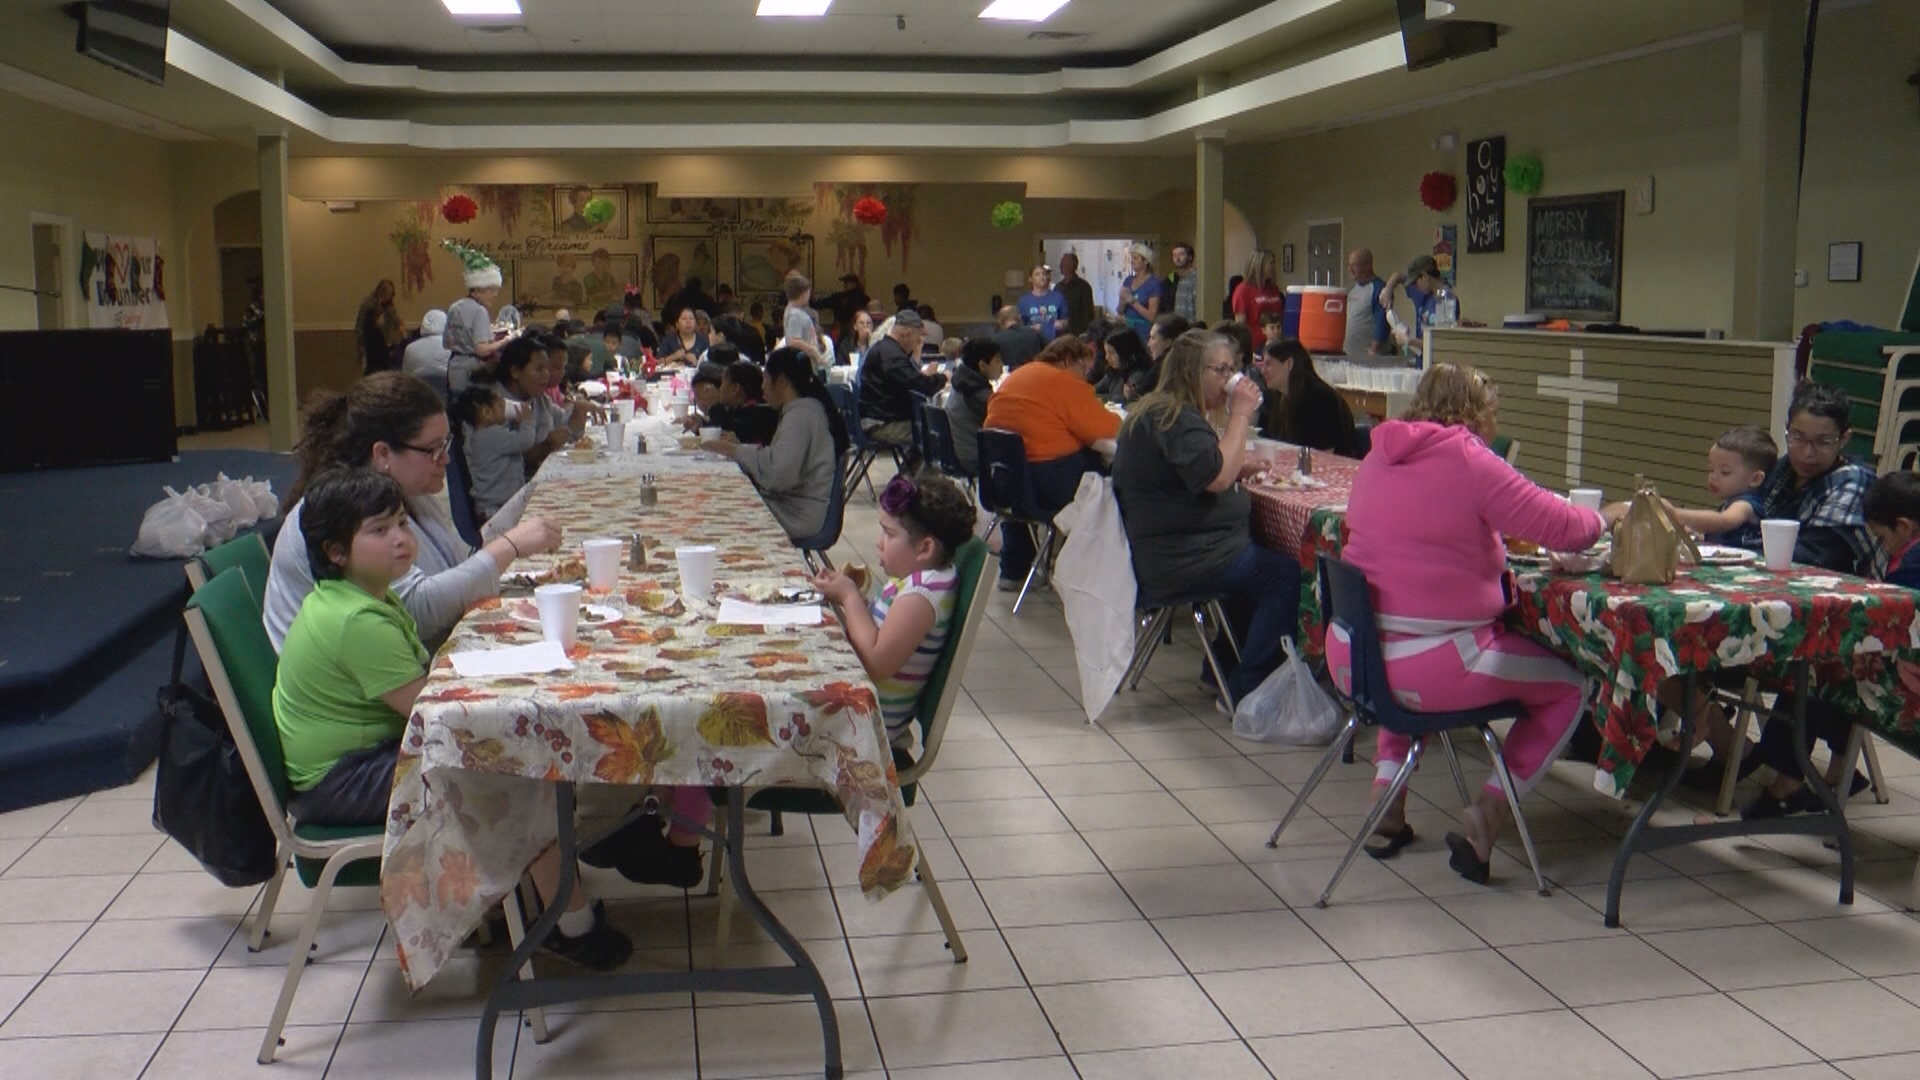 Samaritan Community Center Christmas Lunch 2020 Samaritan Community Center Serves Annual Christmas Lunch